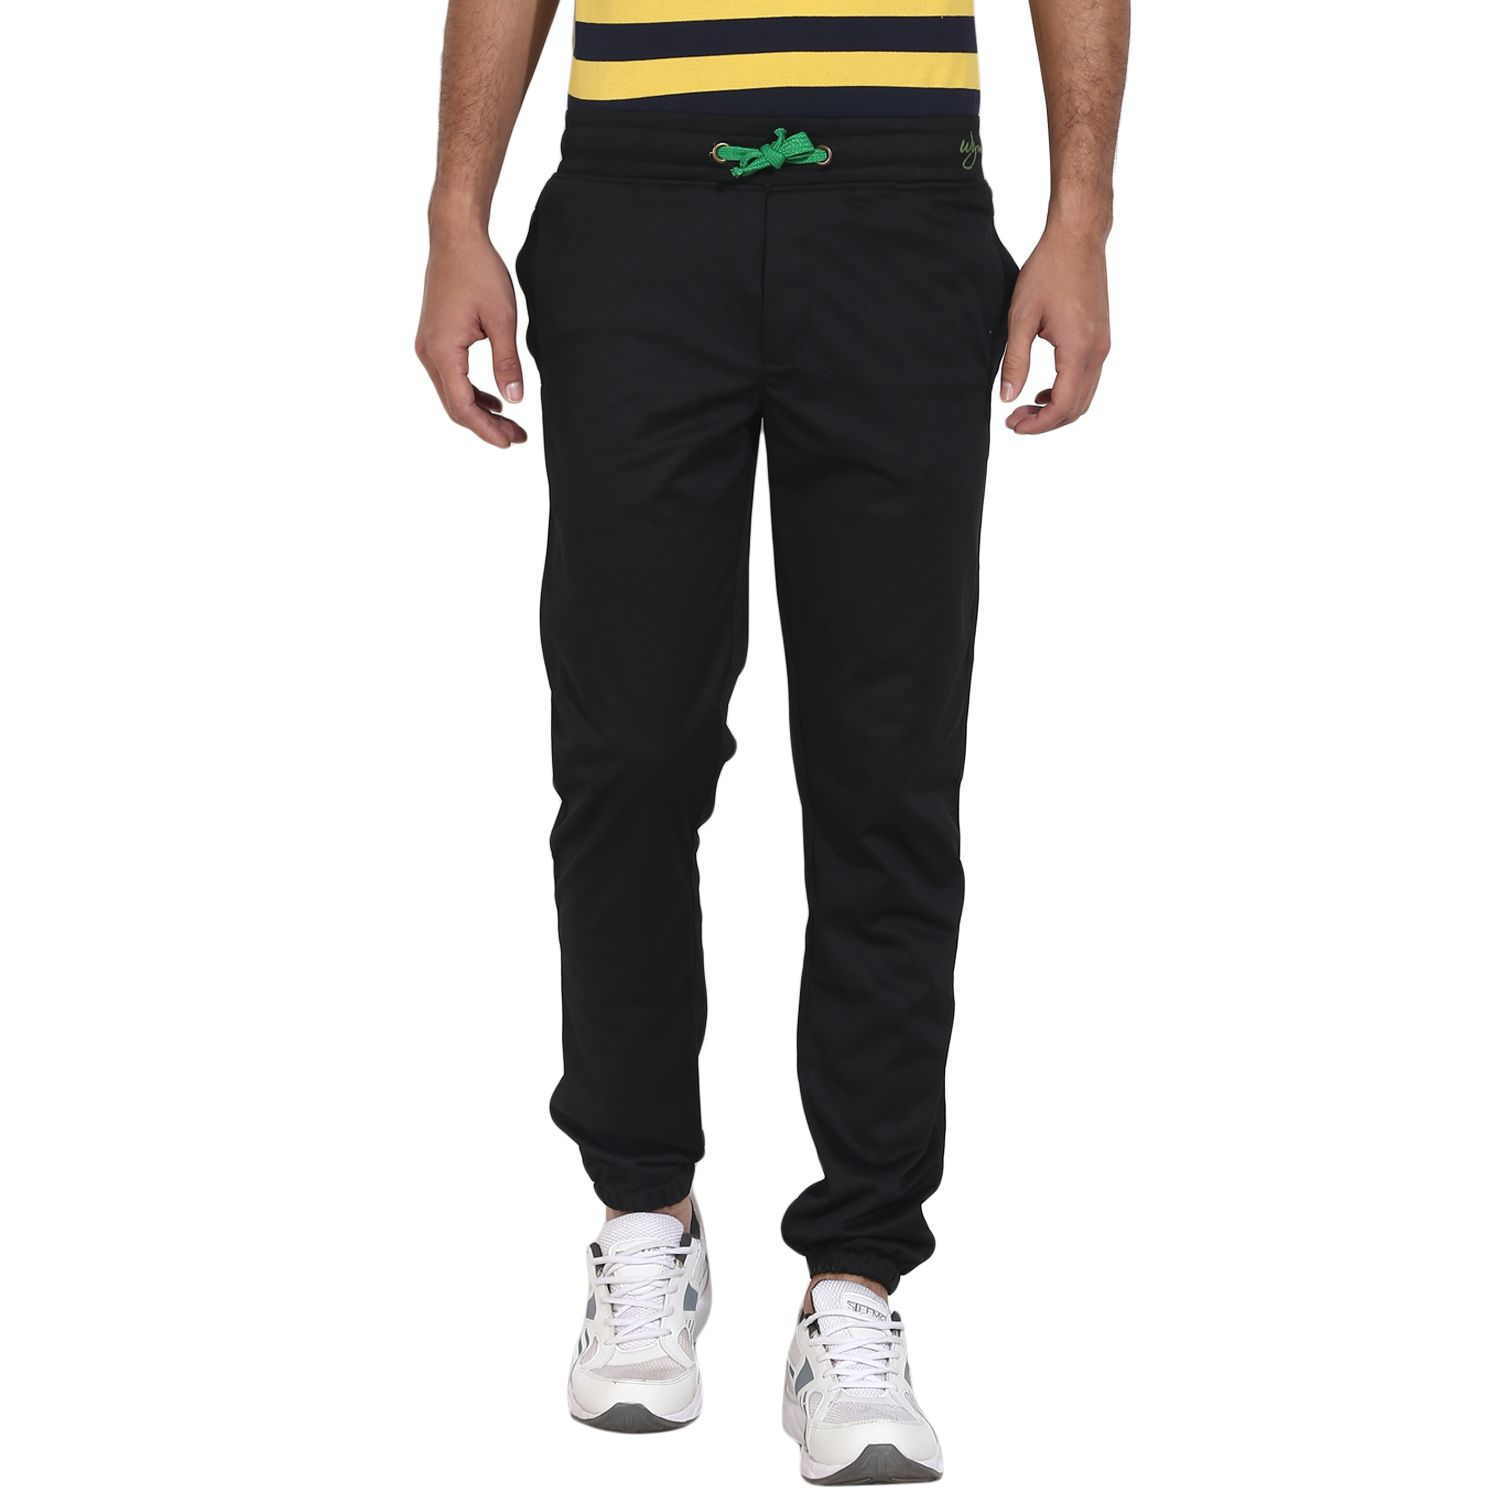 Wear Your Mind Black Regular -Fit Flat Joggers